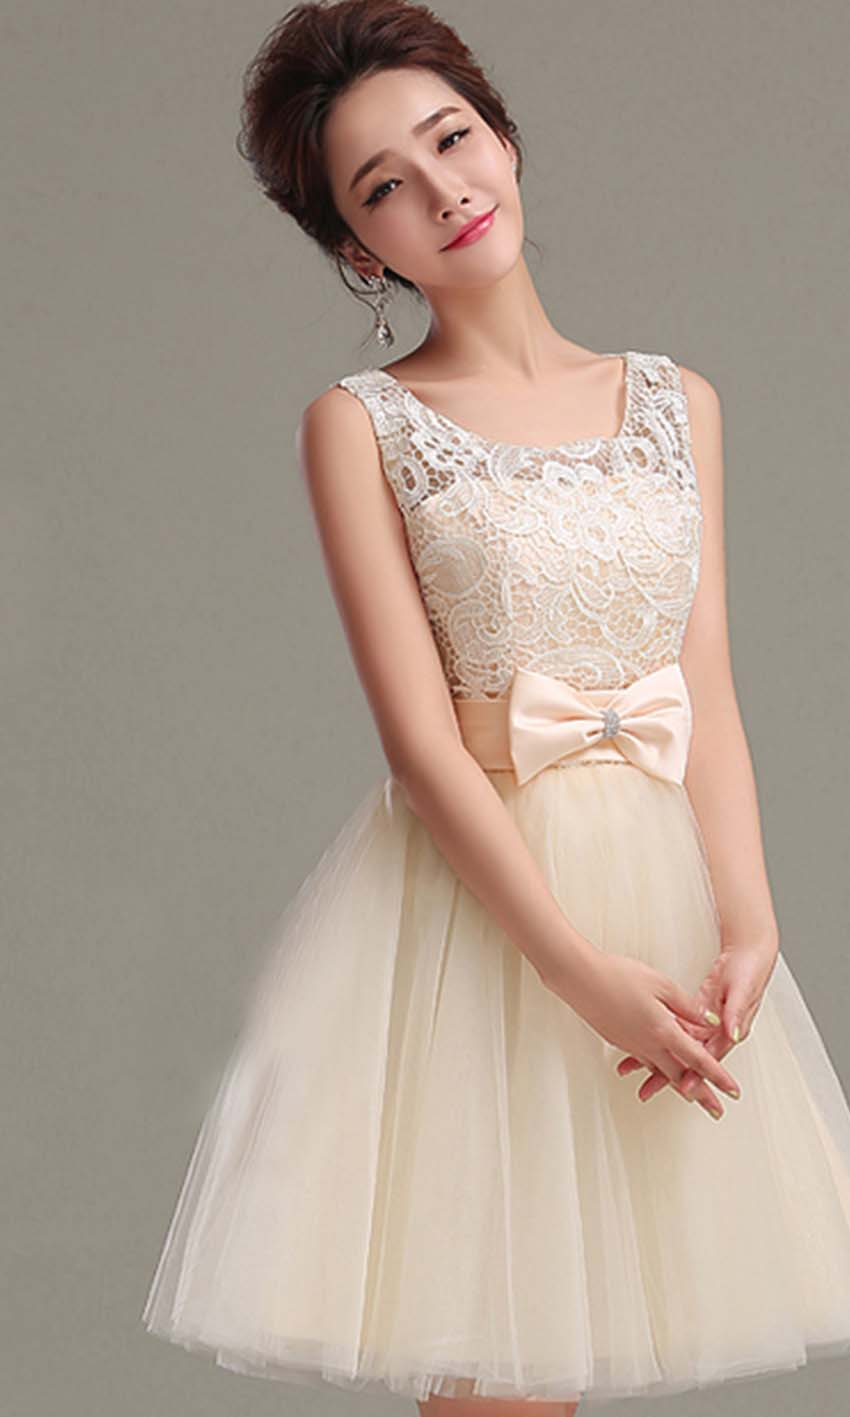 Cute beige retro bow knot short prom gown ksp348 ksp348 for Cute short white wedding dresses